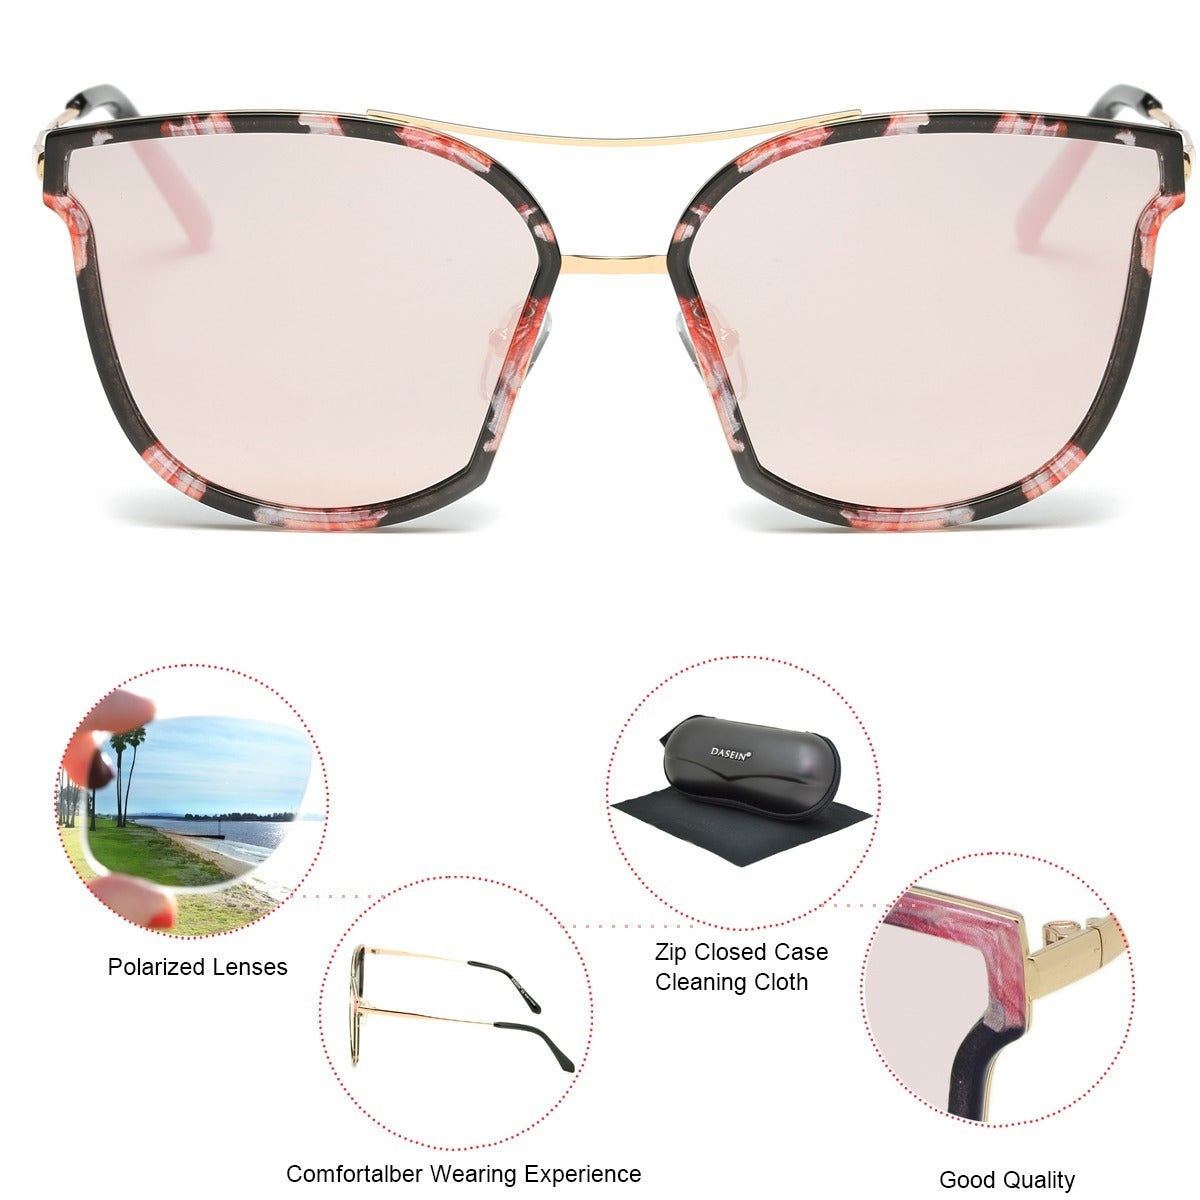 150c2693d42 Shop Dasein Trendy Polarized Mirrored Lens Sunglasses w  Zip Closed Case -  On Sale - Ships To Canada - Overstock - 14664075